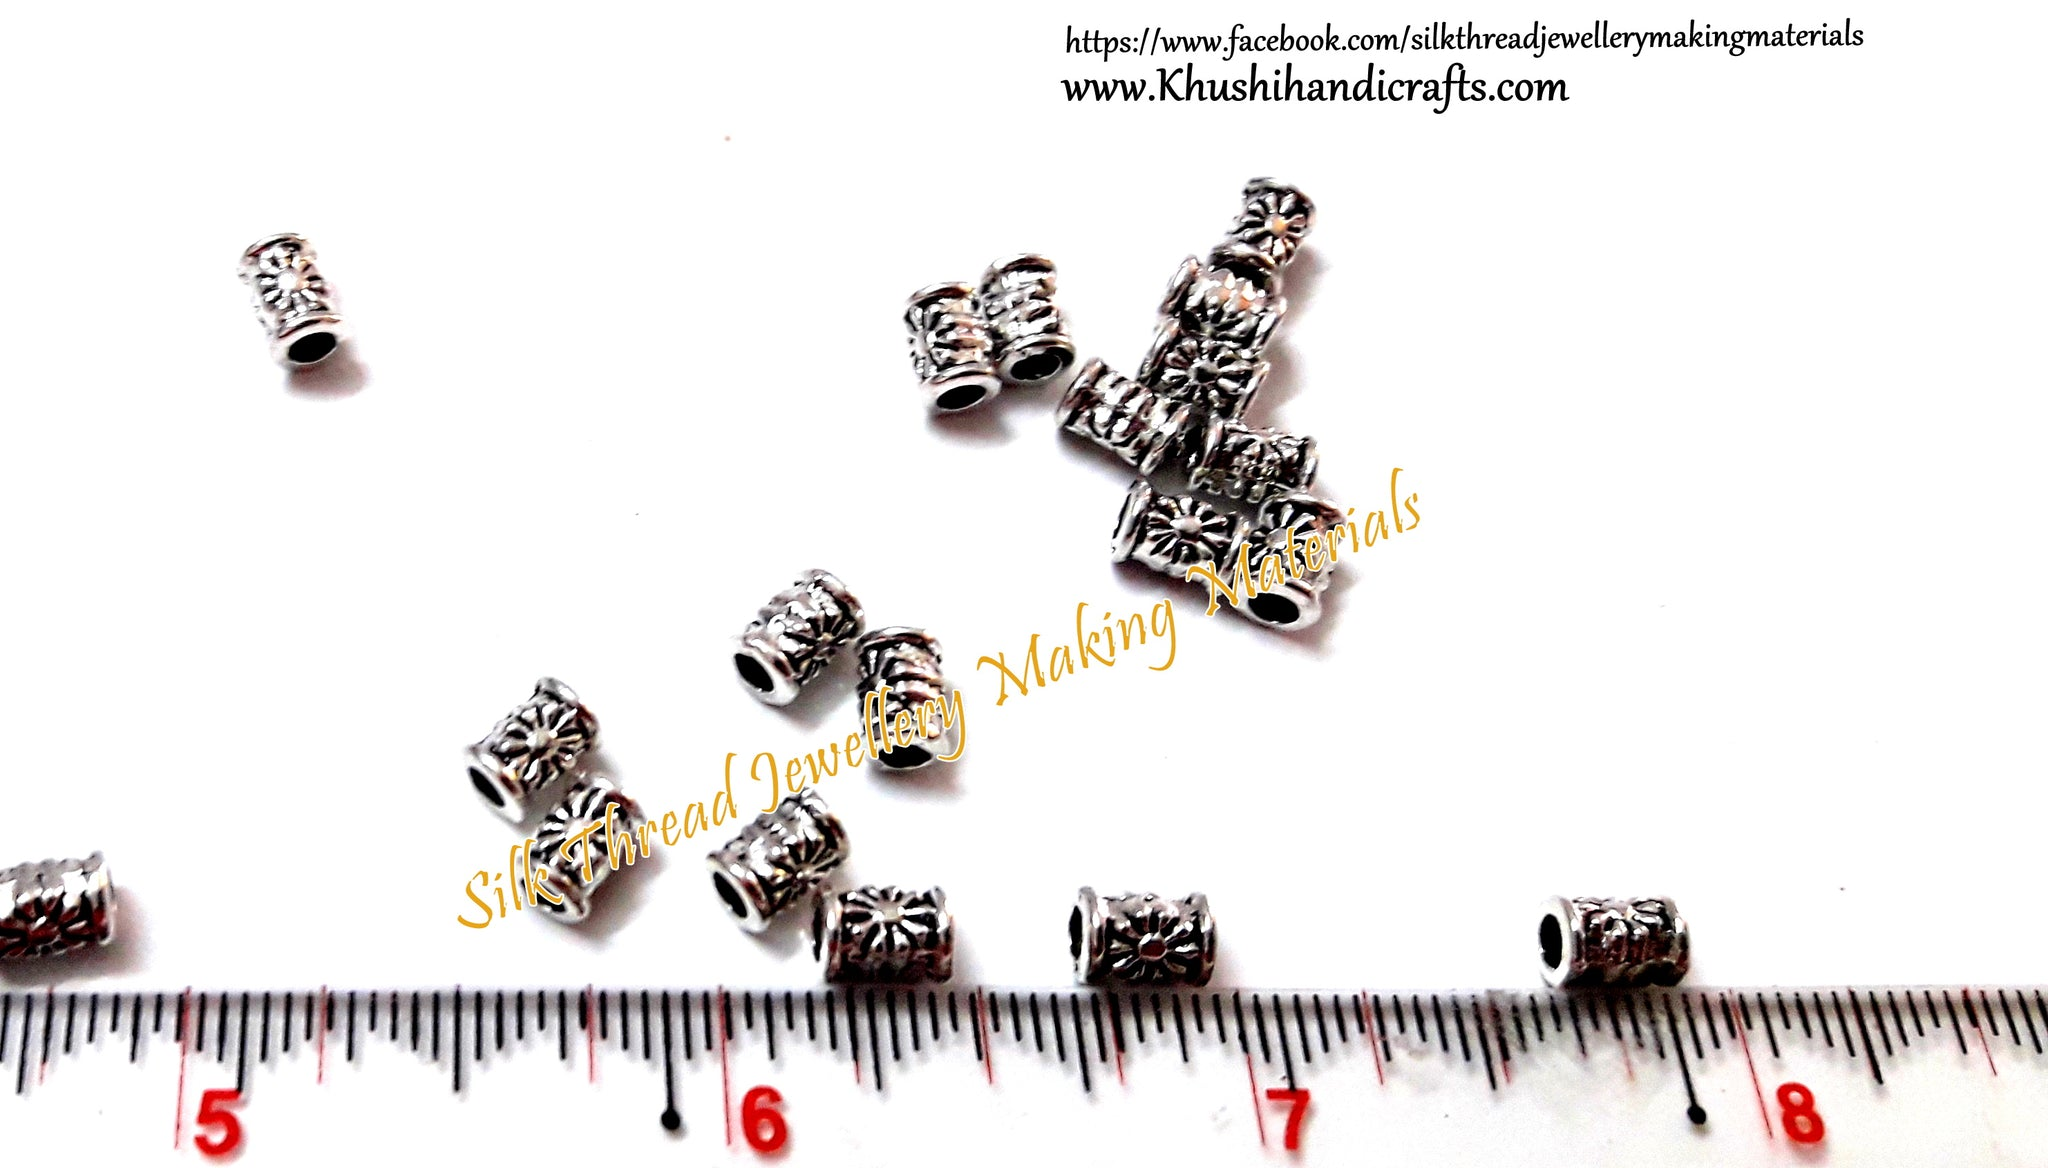 Drum spacer beads